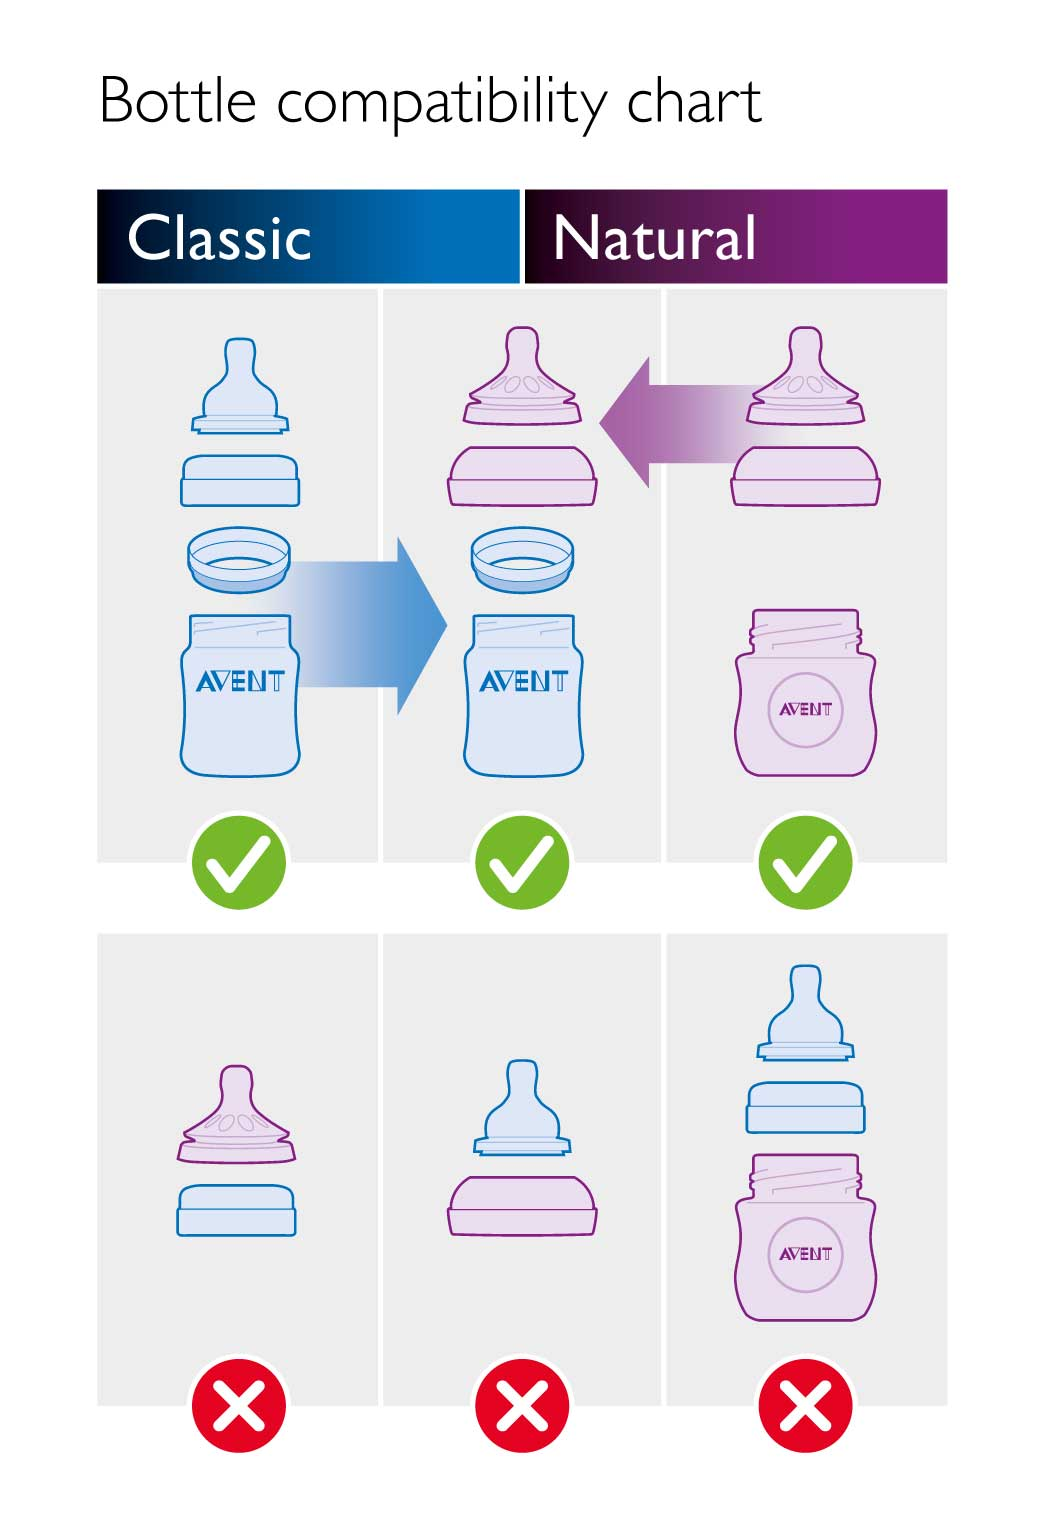 avent bottle warmer instructions for use